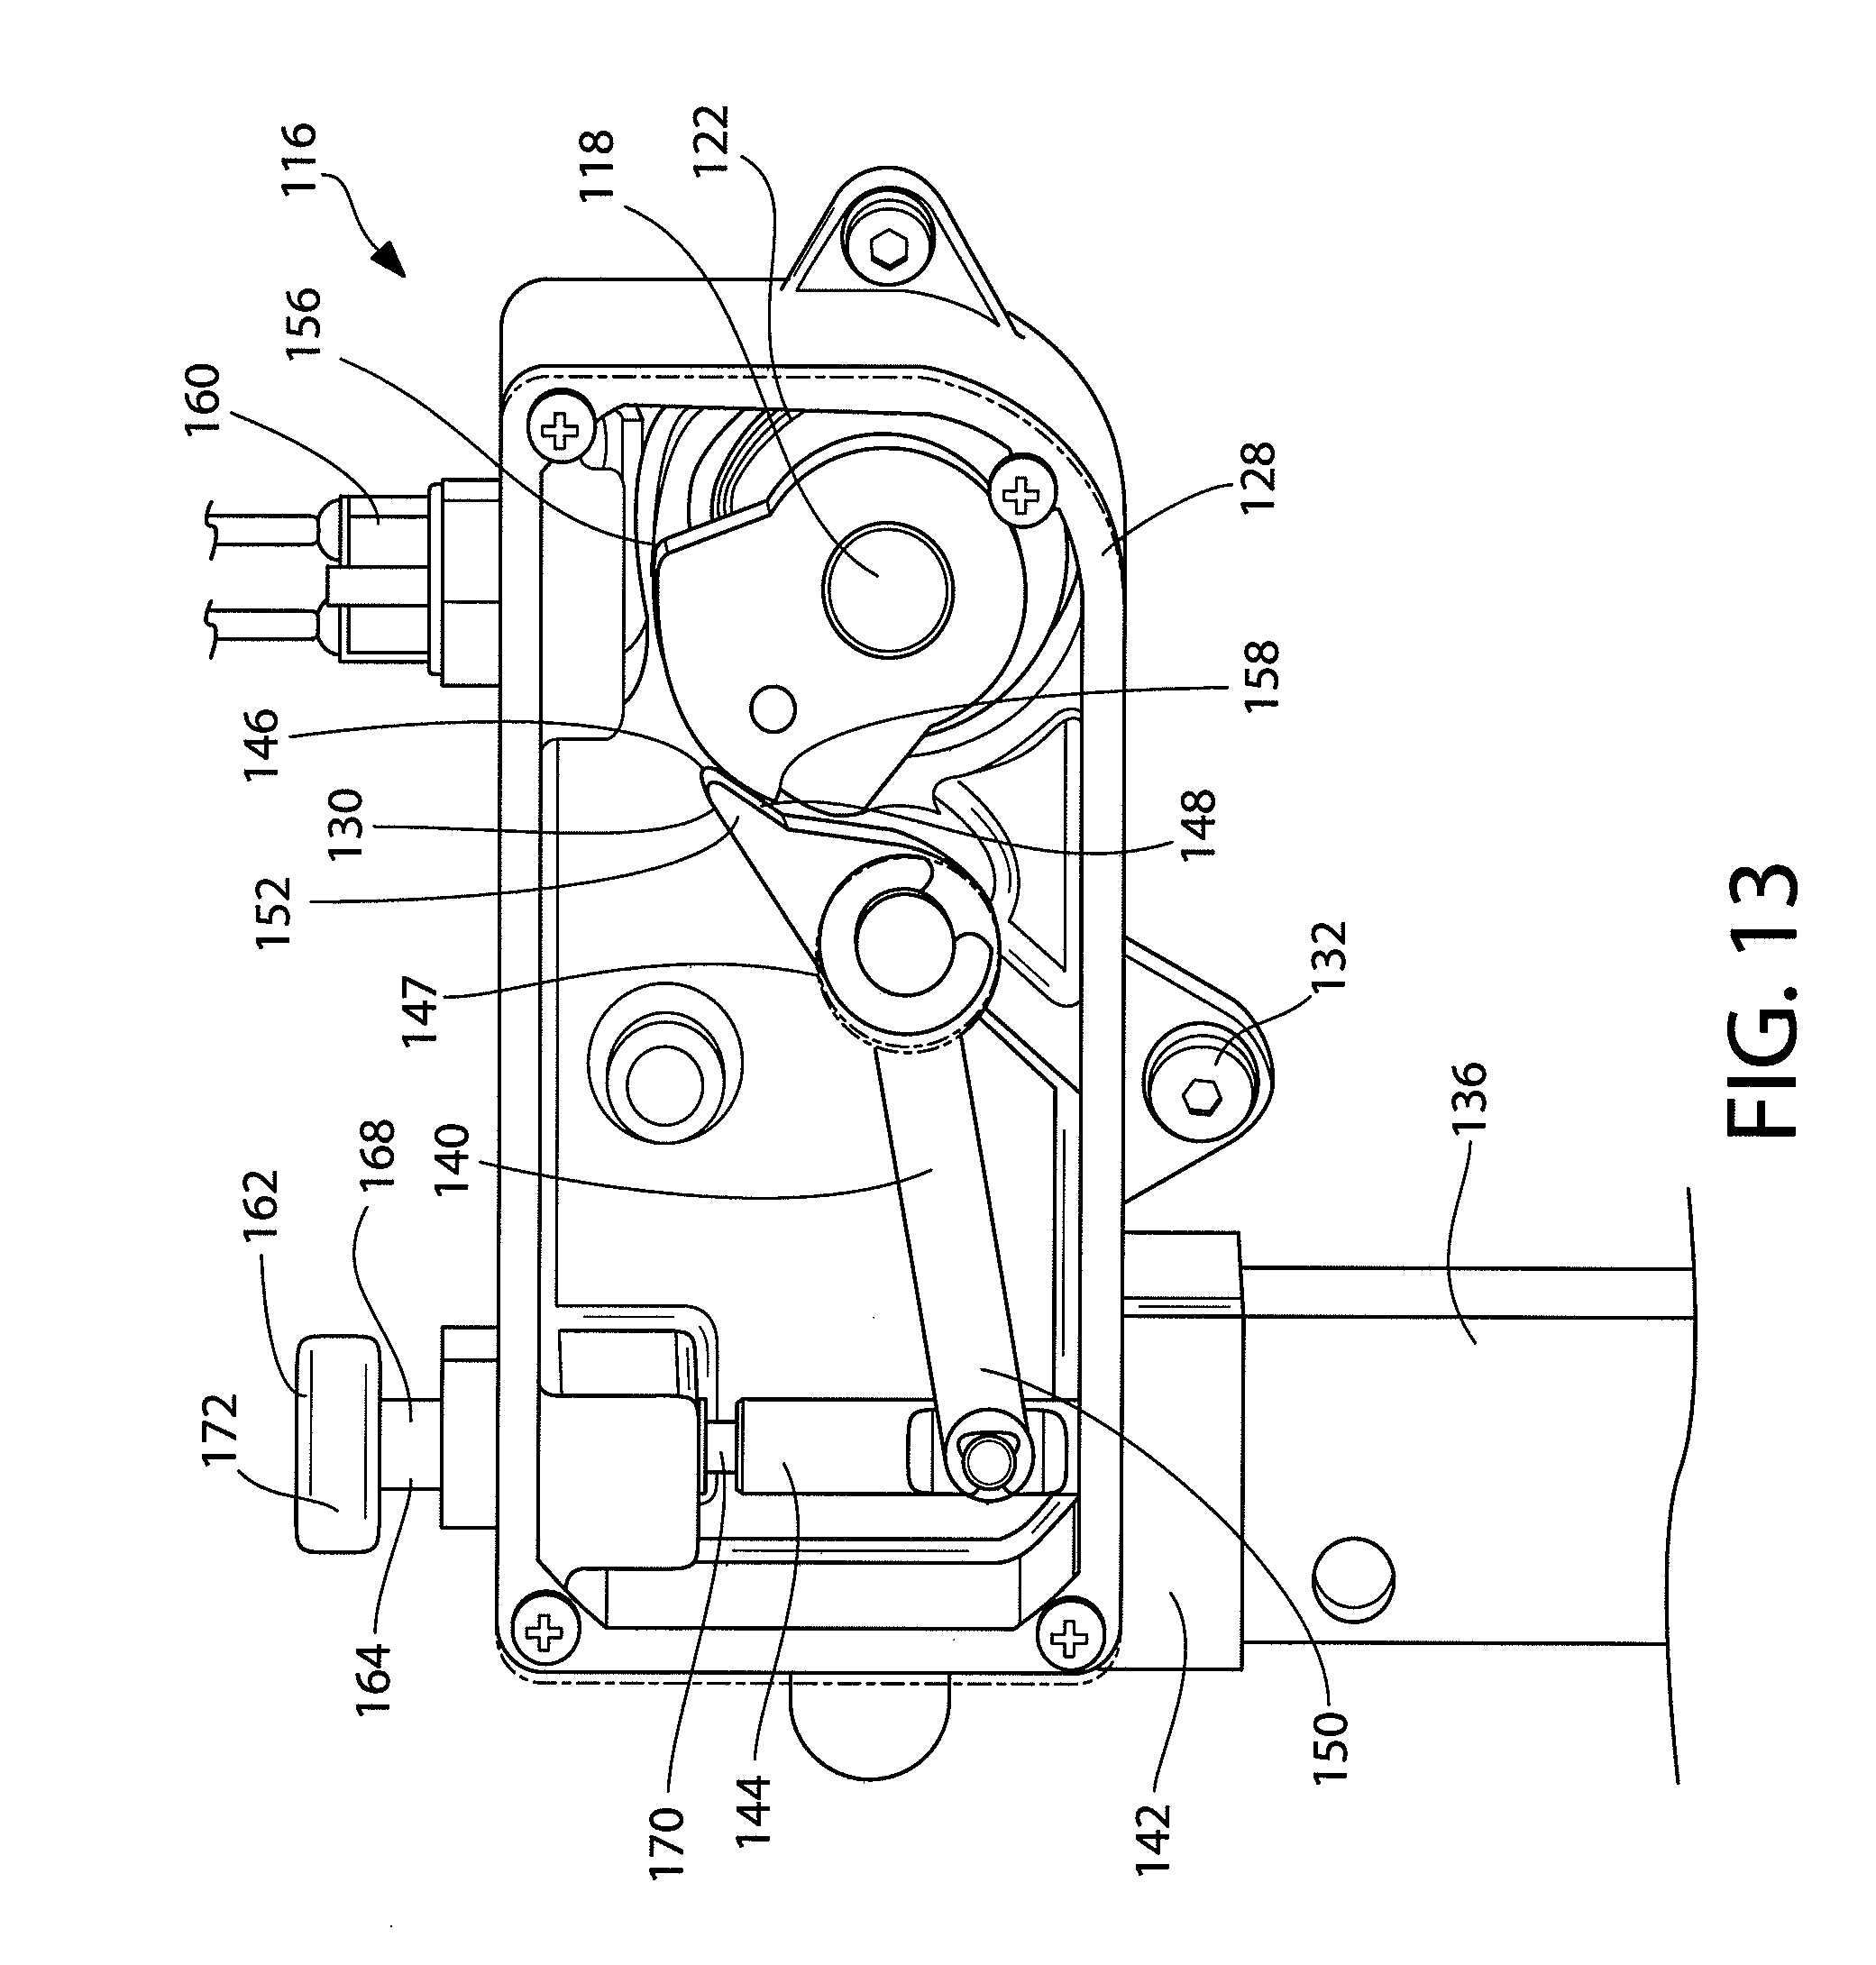 US20130068972A1 20130321 D00013 patent us20130068972 air shutoff swing gate valve google patents roda deaco valve wiring diagram at bayanpartner.co